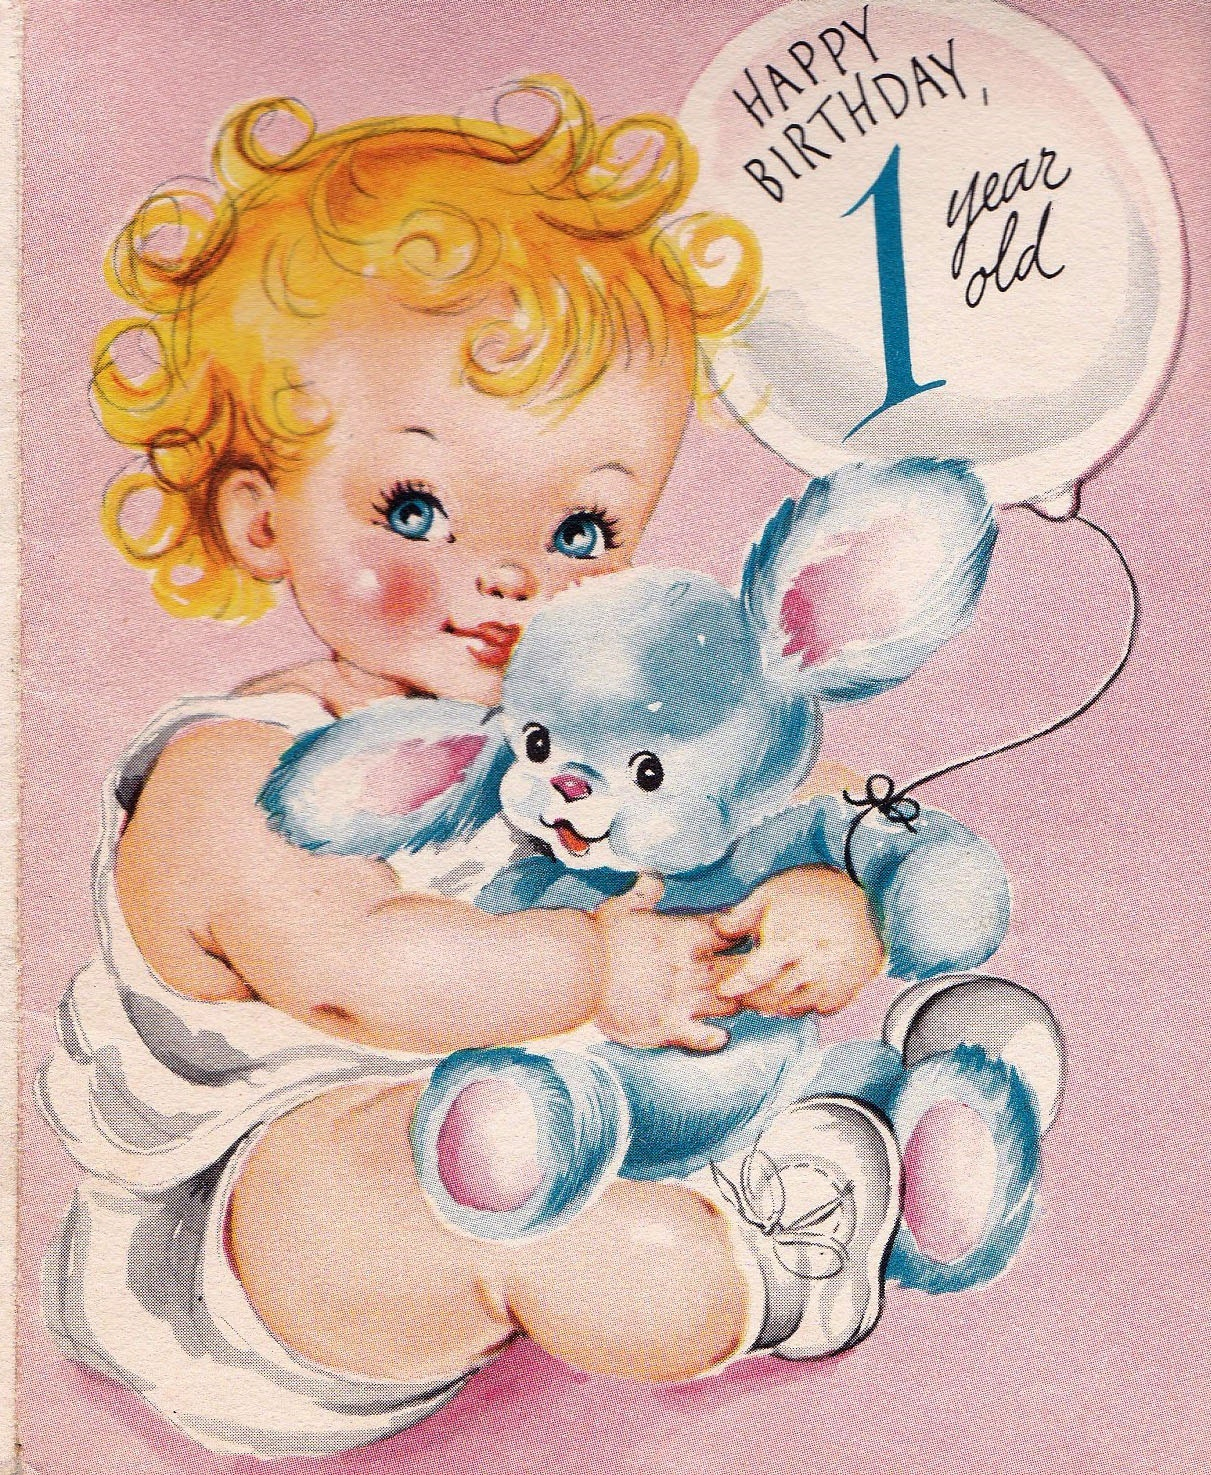 Vintage 1950s Happy Birthday 1 Year Old Greetings Card B9